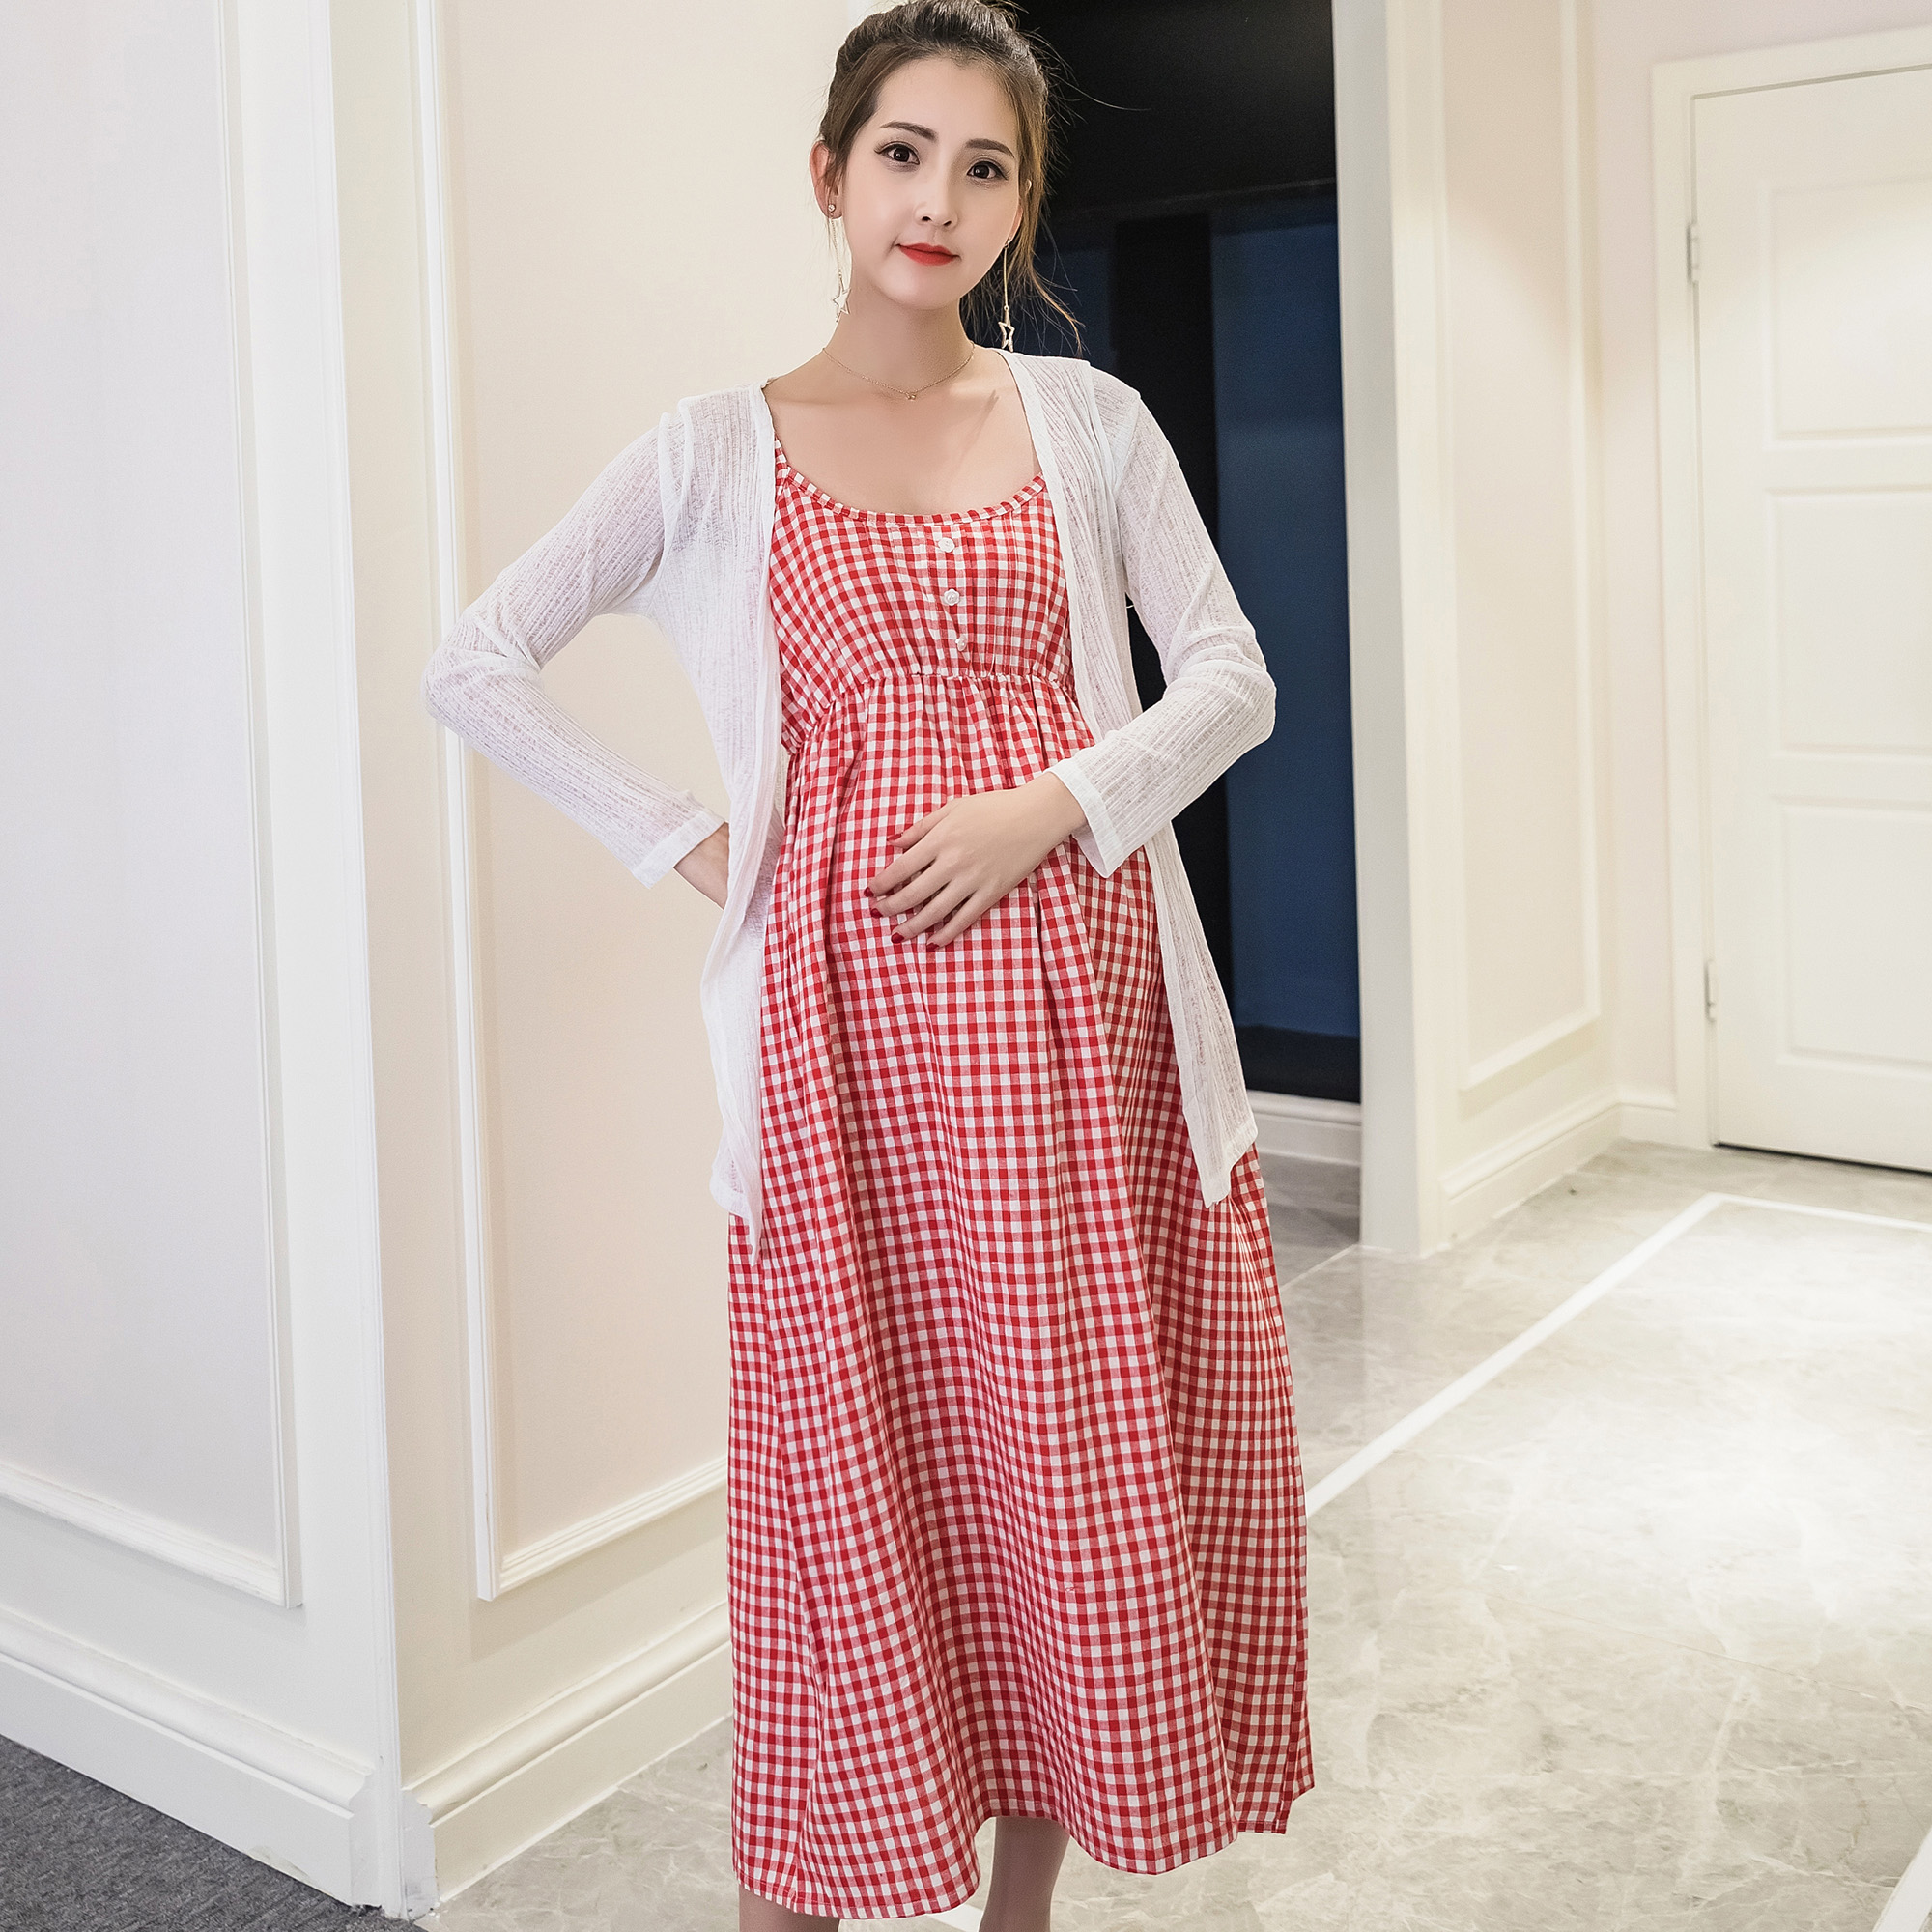 Compare Prices on Small Maternity Clothes- Online Shopping/Buy Low ...